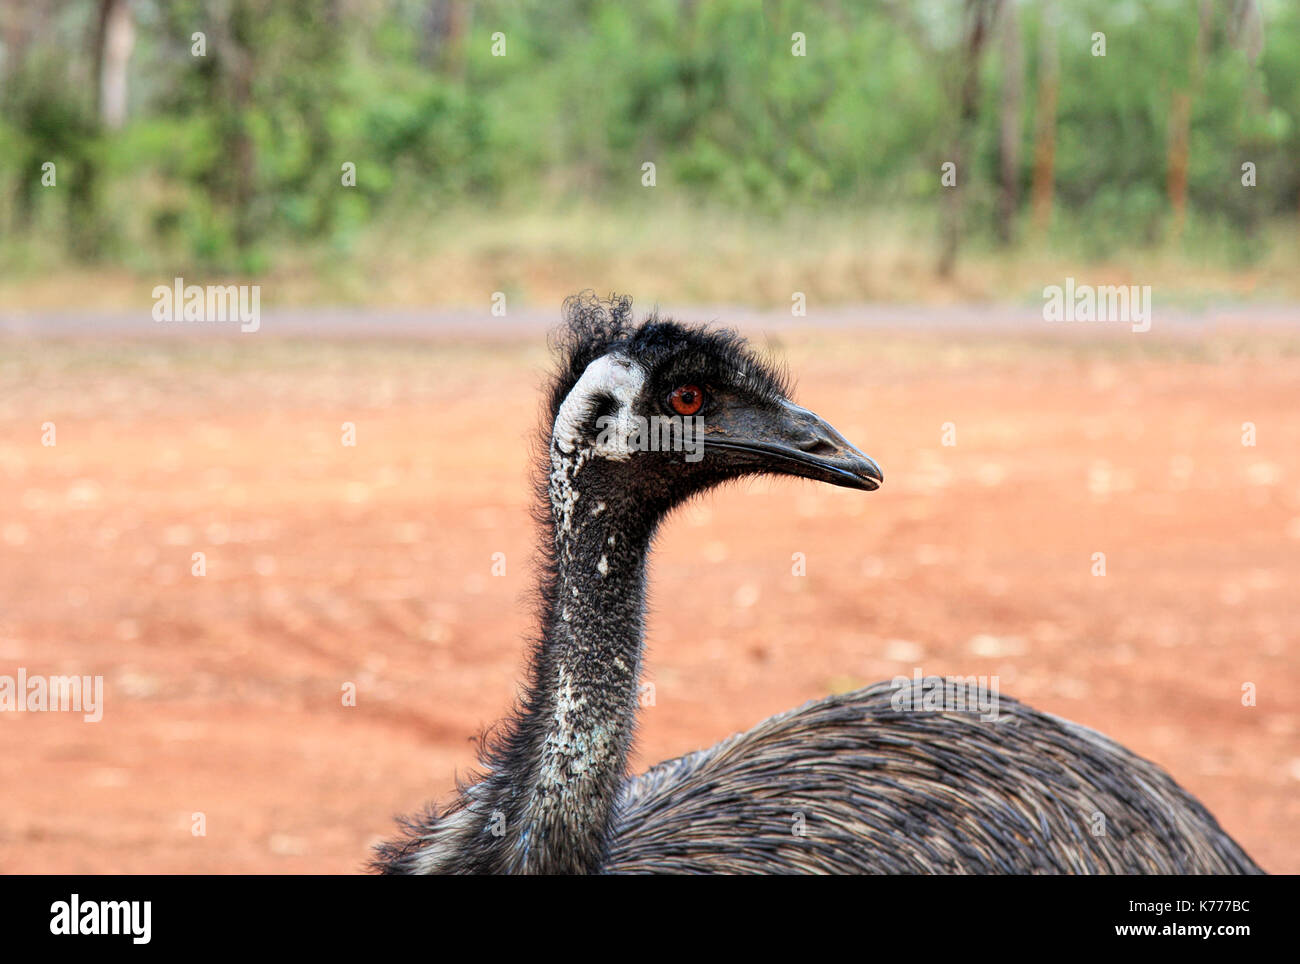 Wild Emu found in Australia where it is the largest native bird - Stock Image